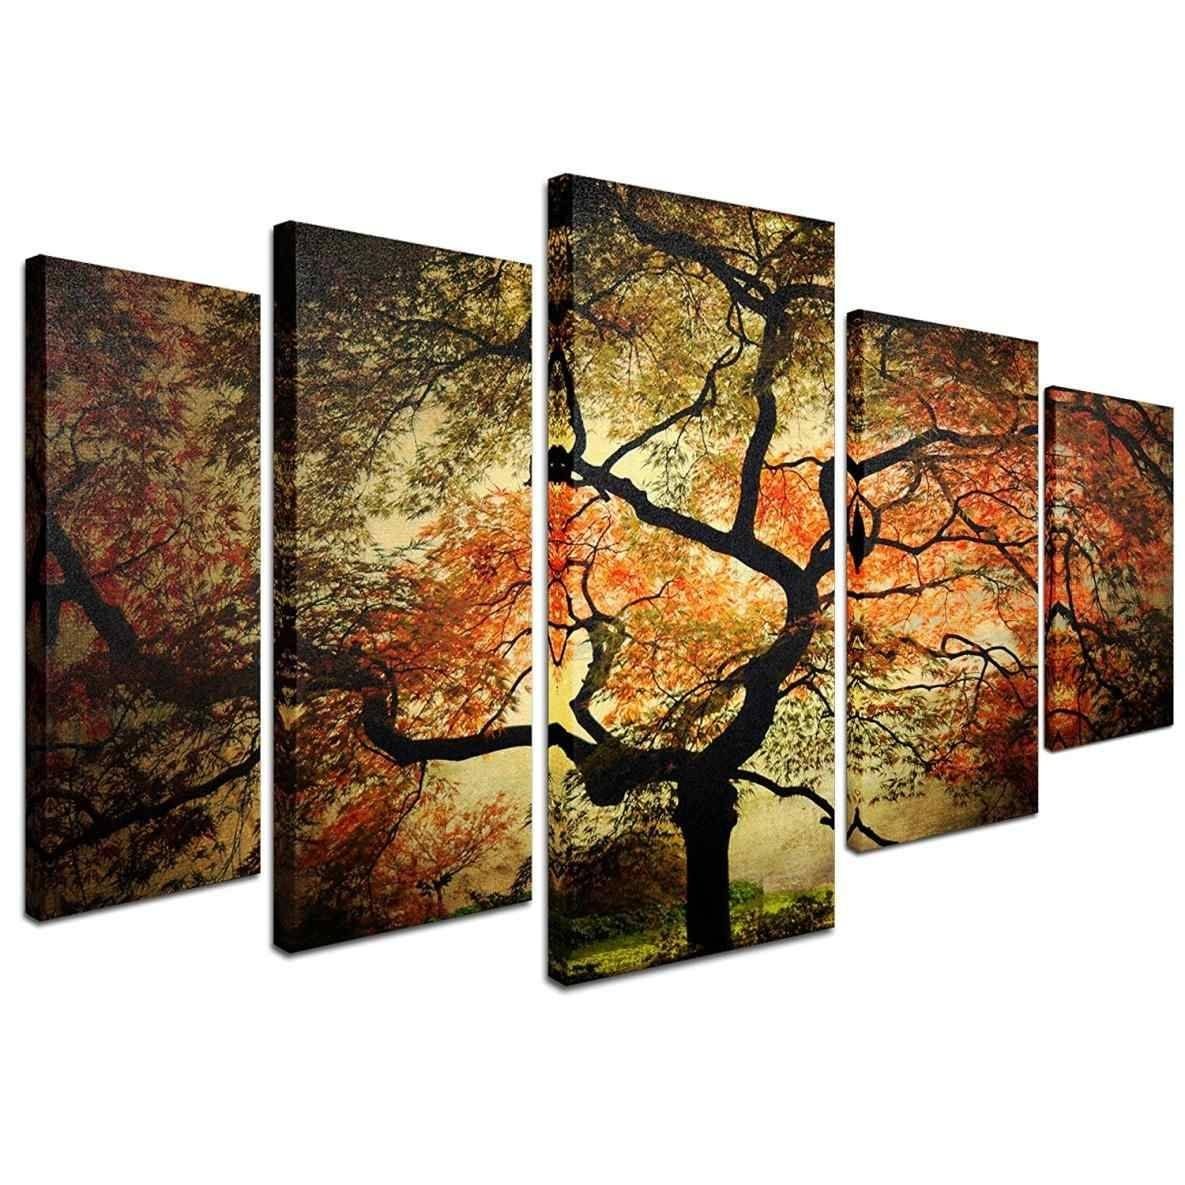 Multiple Piece Canvas Wall Art | Home Interior Decor Inside Best And Newest Multiple Canvas Wall Art (View 11 of 20)